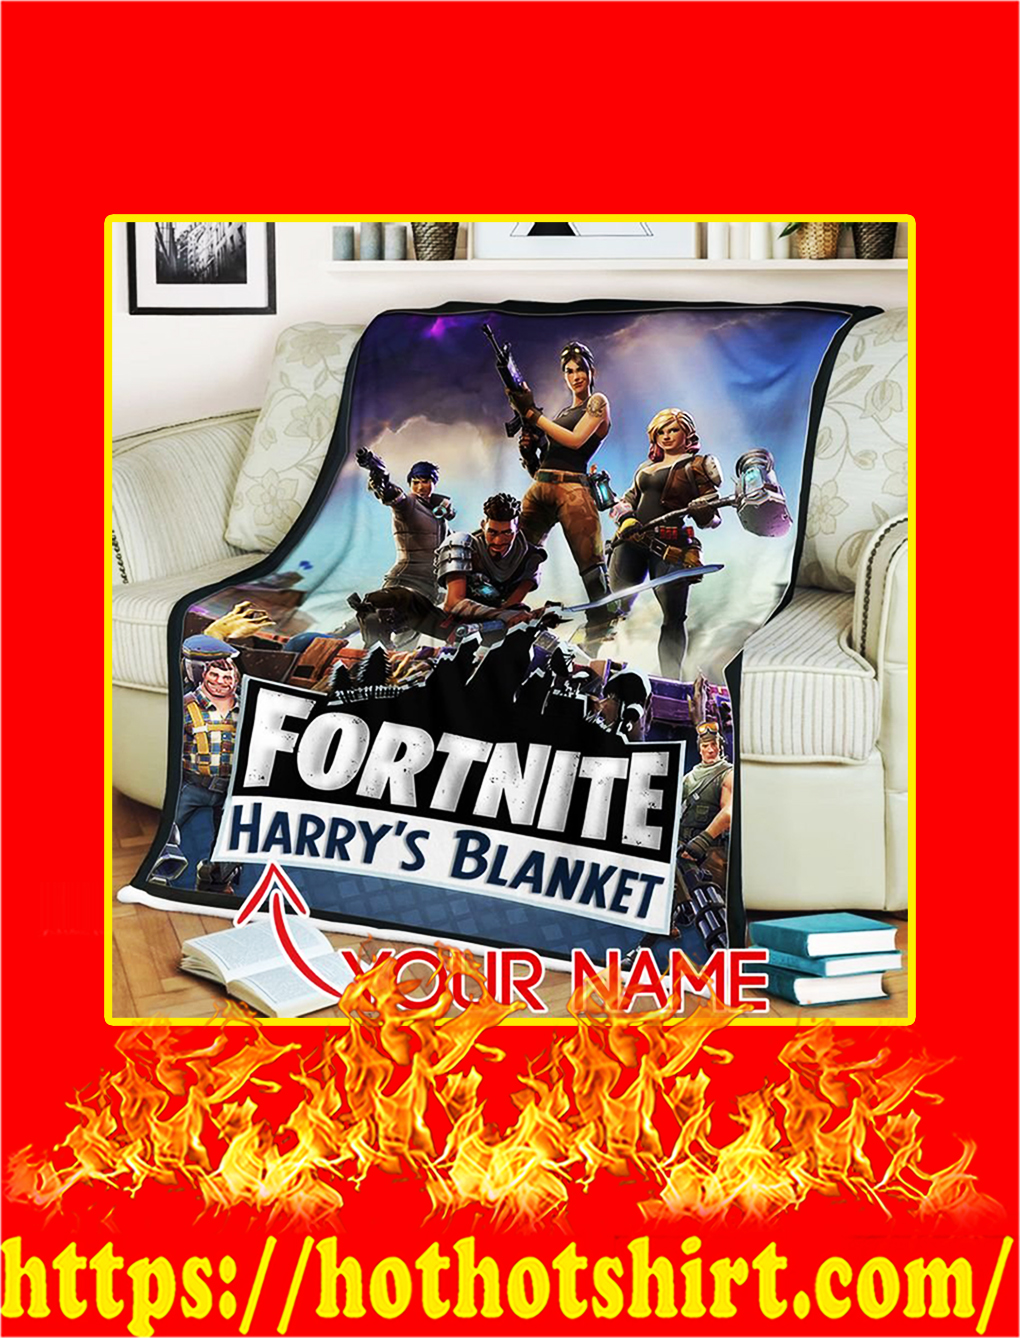 Fortnite Gaming Custom Name Personalize Blanket - medium